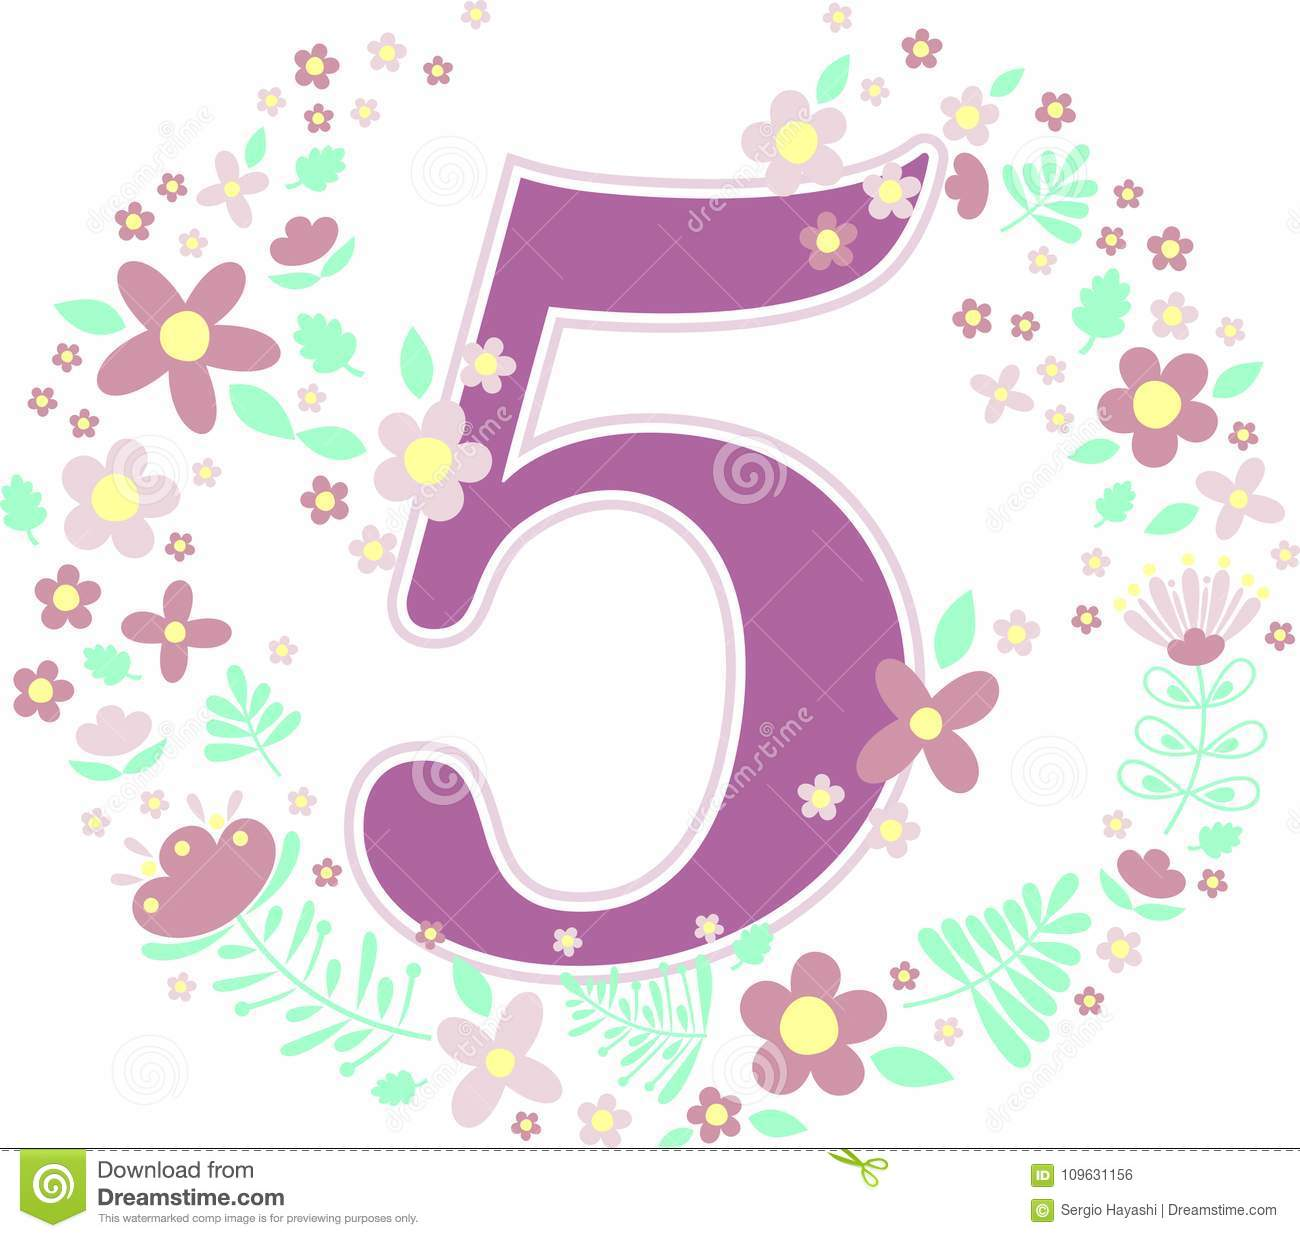 Number 5 With Decorative Flowers And Design Elements Isolated On White Background Can Be Used For Baby Girl Birthagebirthday Nursery Decoration